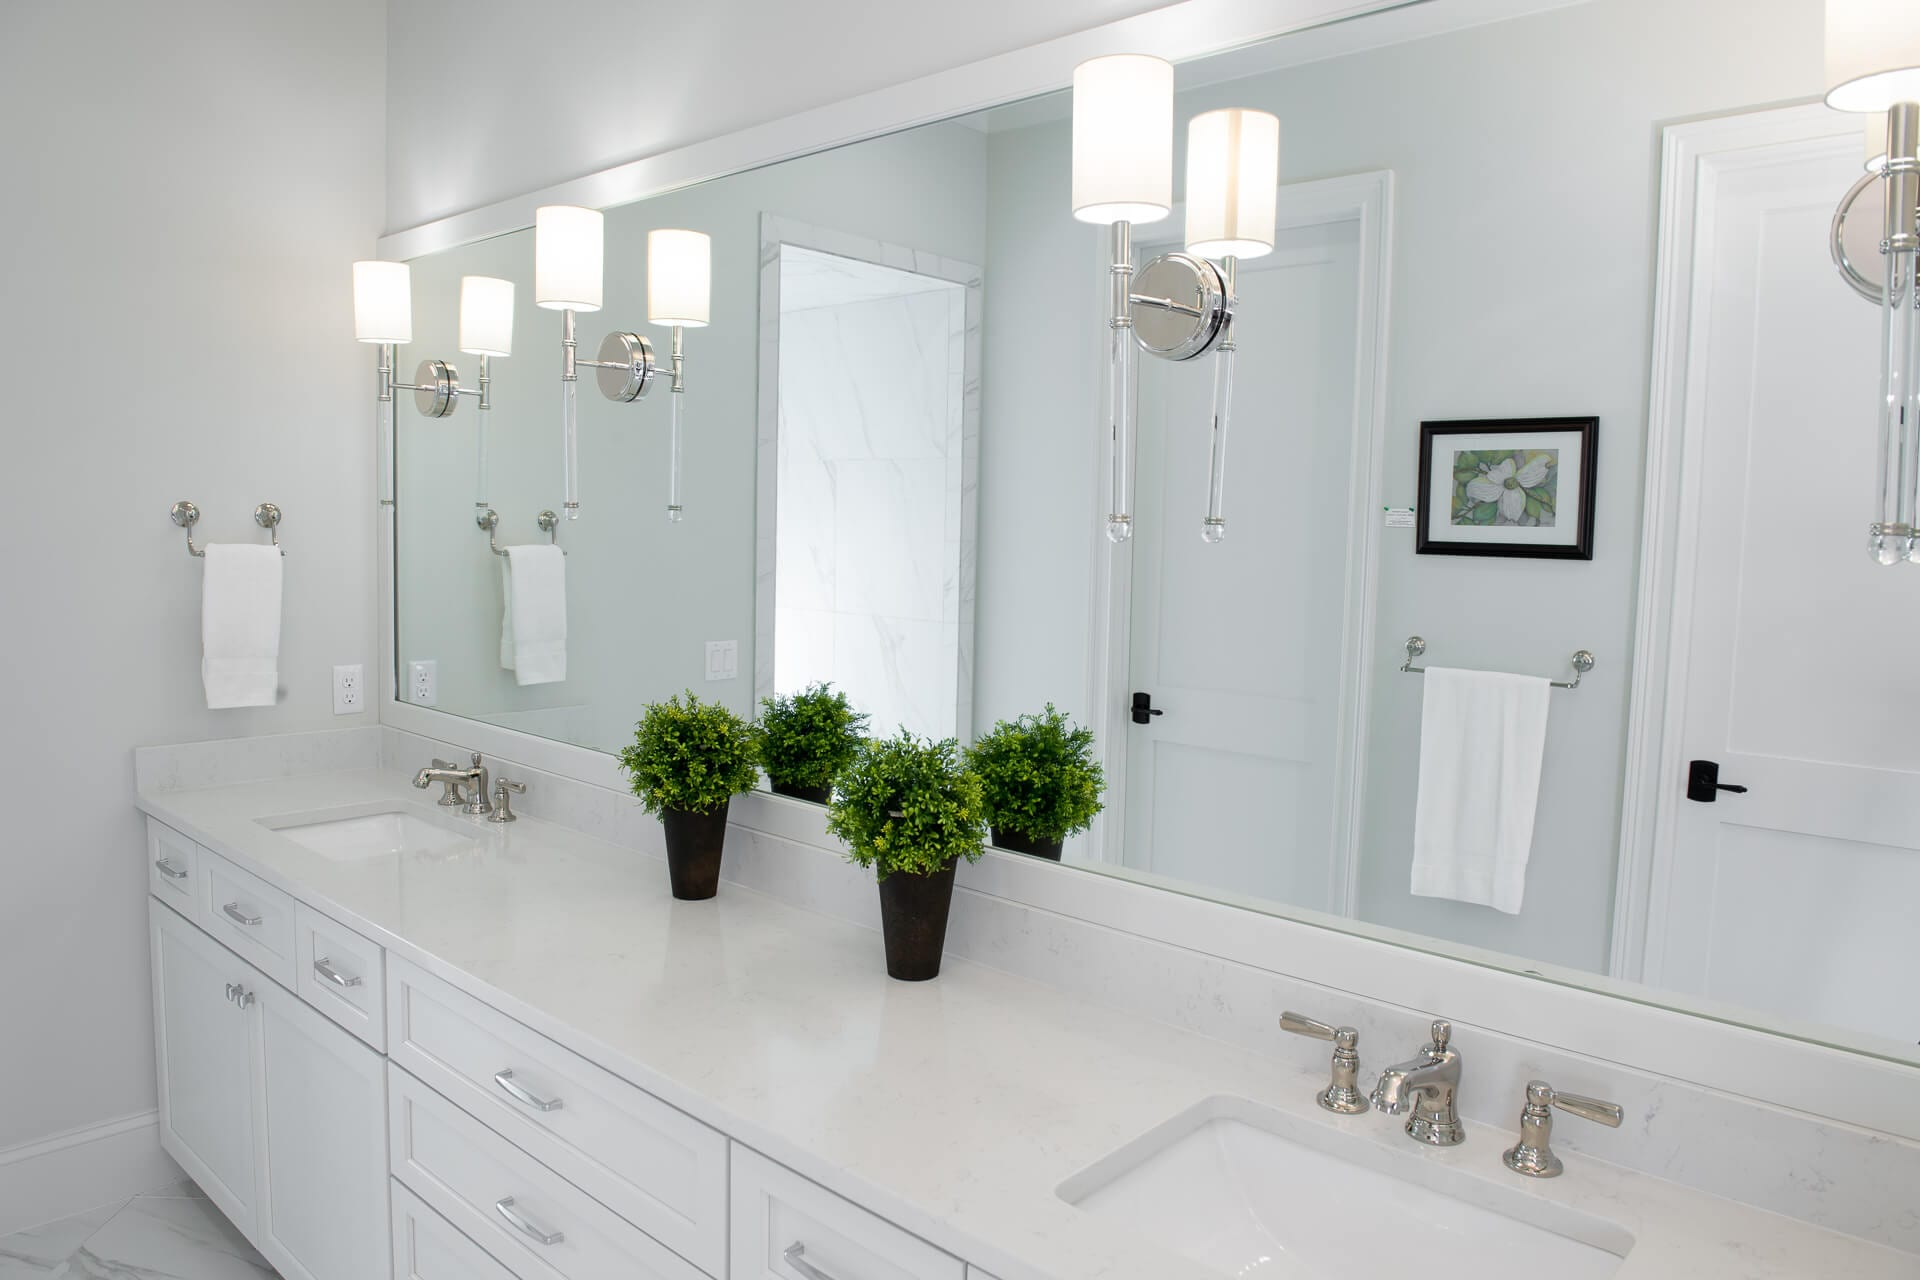 nd5 1116 Bathroom Vanities by Magnolia Countertops, Countertop Fabrication, Countertop Replacement and Repair in Cookeville and Crossville TN.